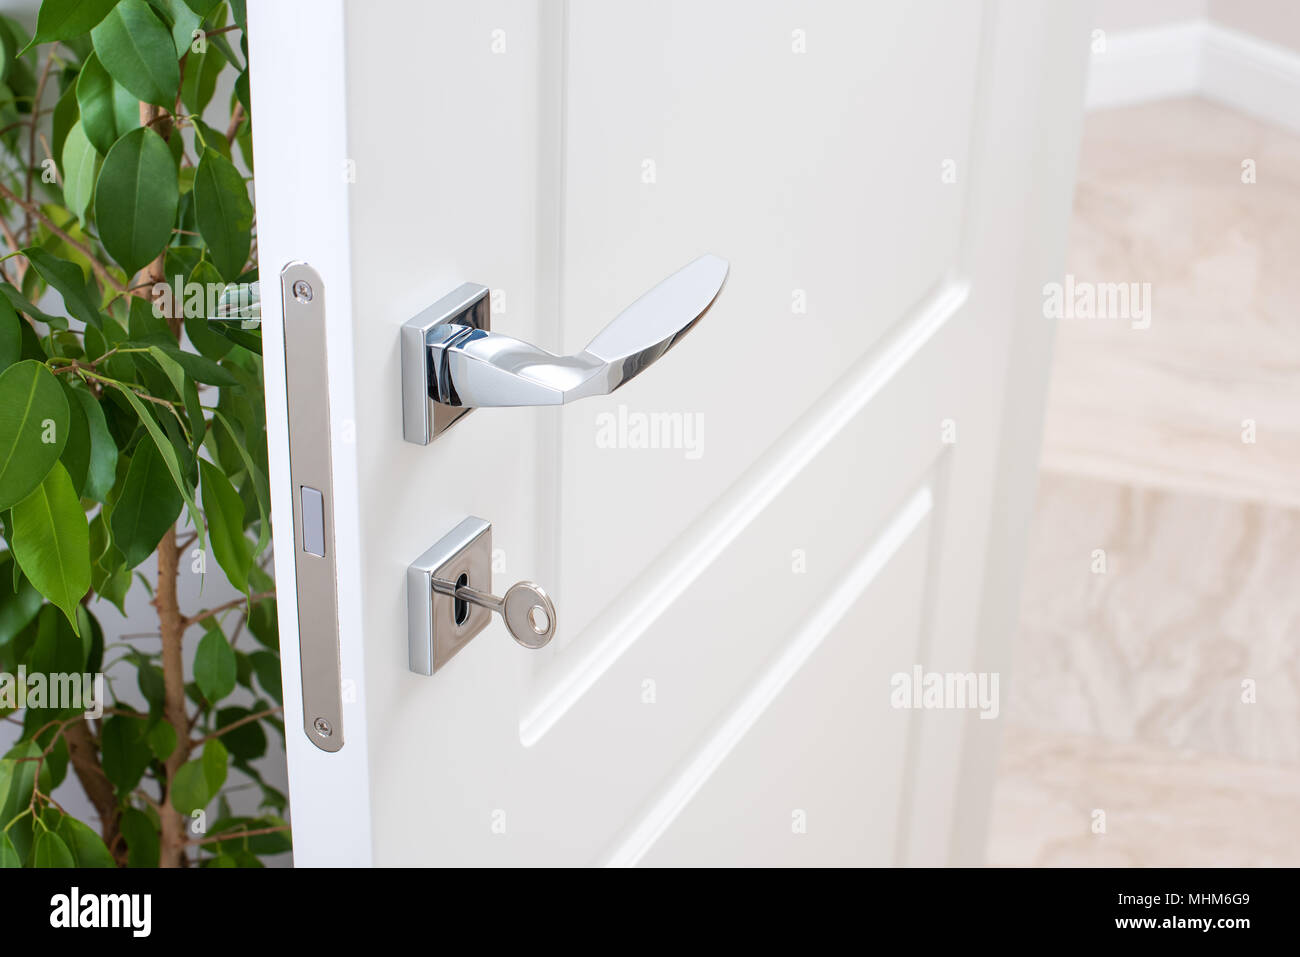 Closeup of door fittings. A white door with modern chrome handles, door lock with key. Interior decor with green plant. - Stock Image